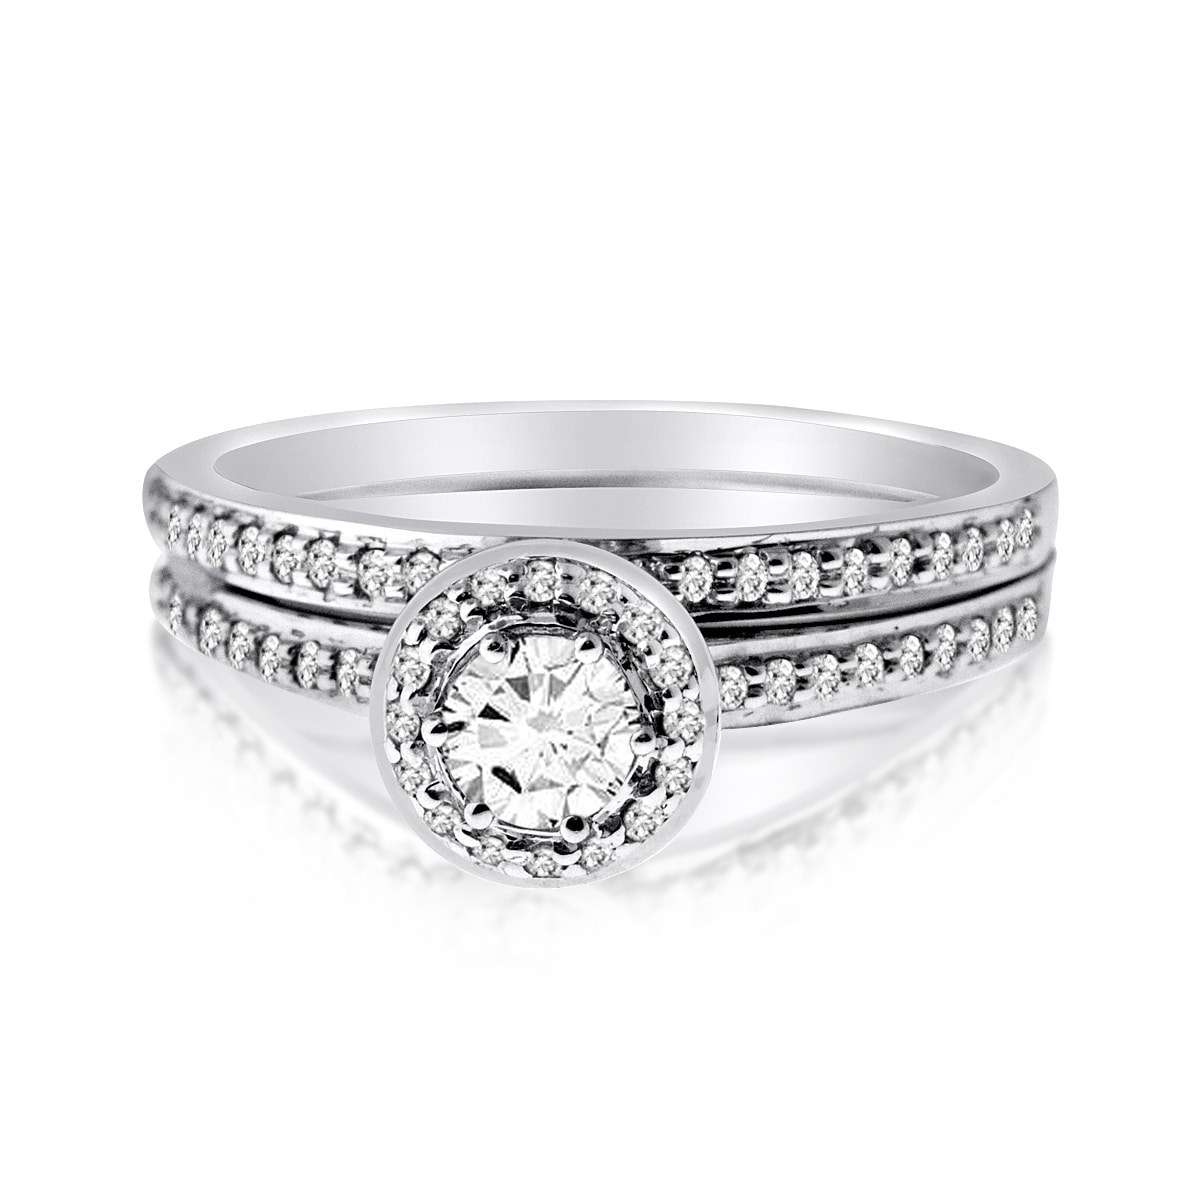 1//10 cttw, G-H,I2-I3 3 Diamond Promise Ring in 10K Pink Gold Size-3.5